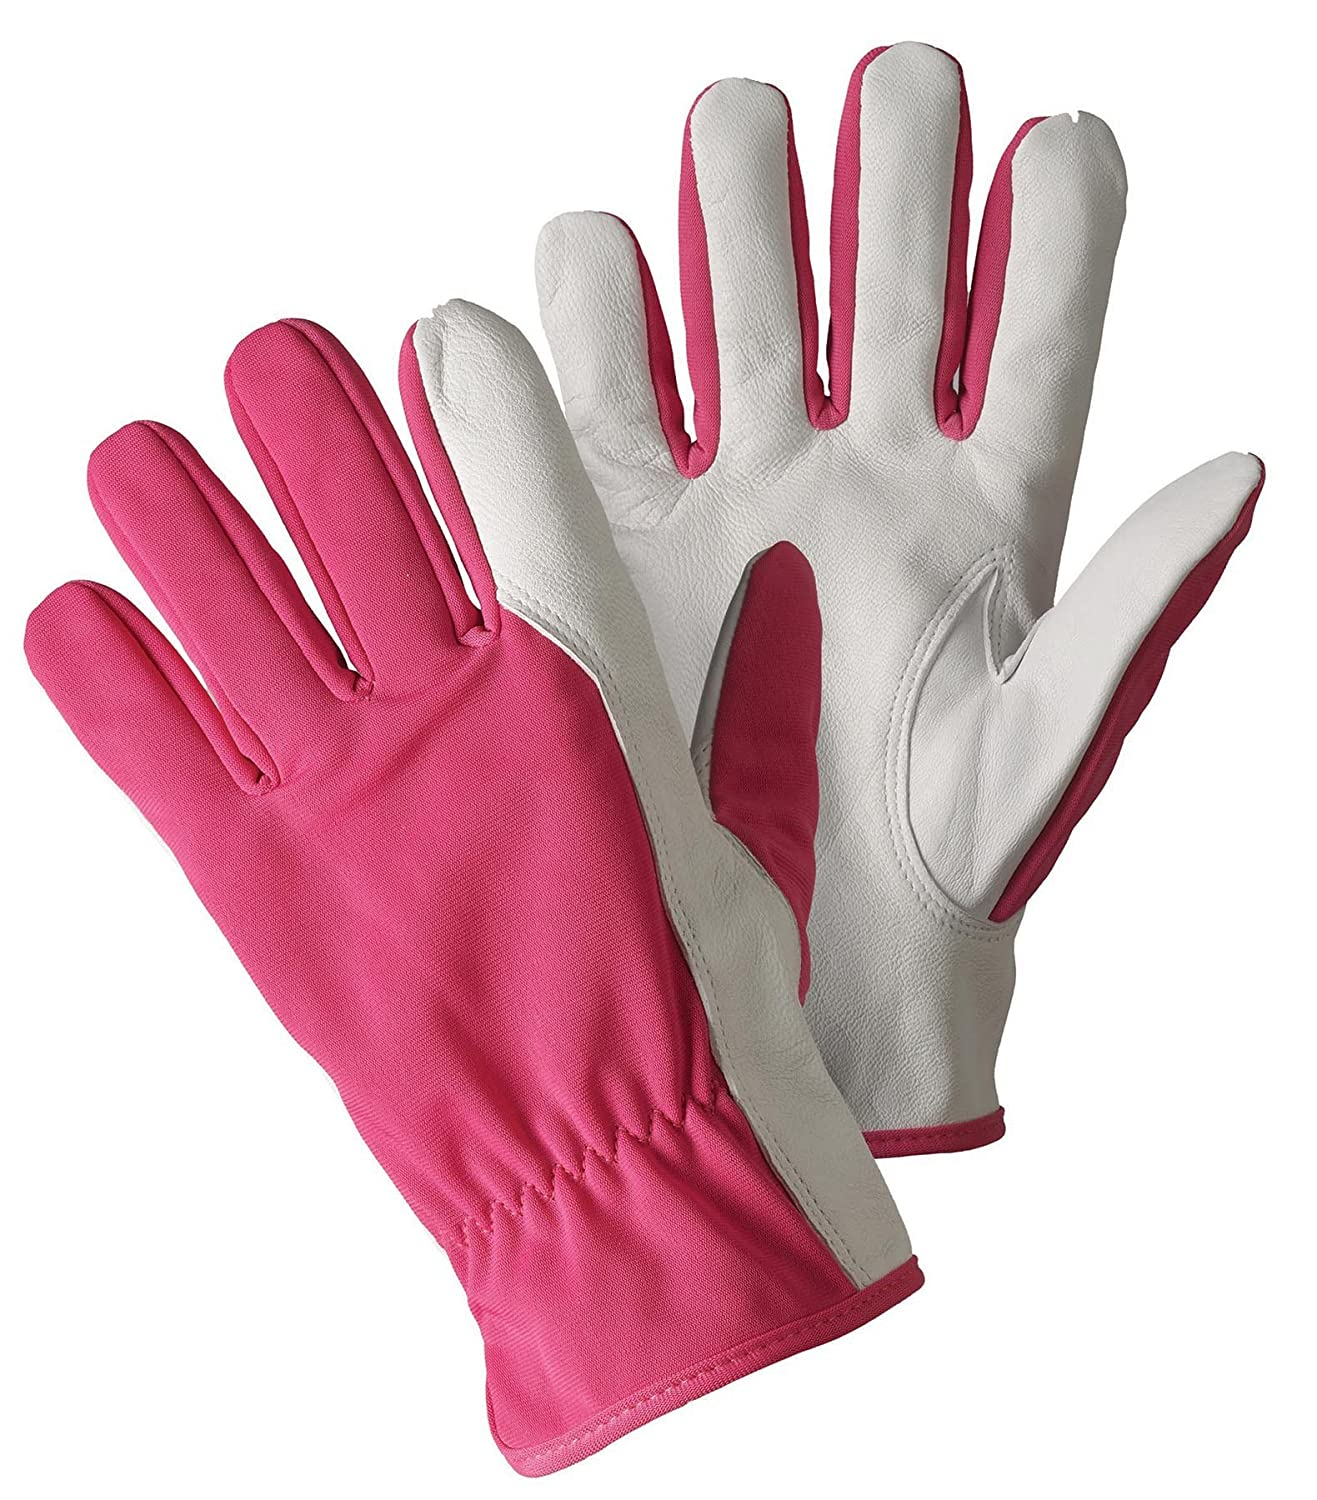 Black Briers Super Soft /& Strong Leather Gloves Large